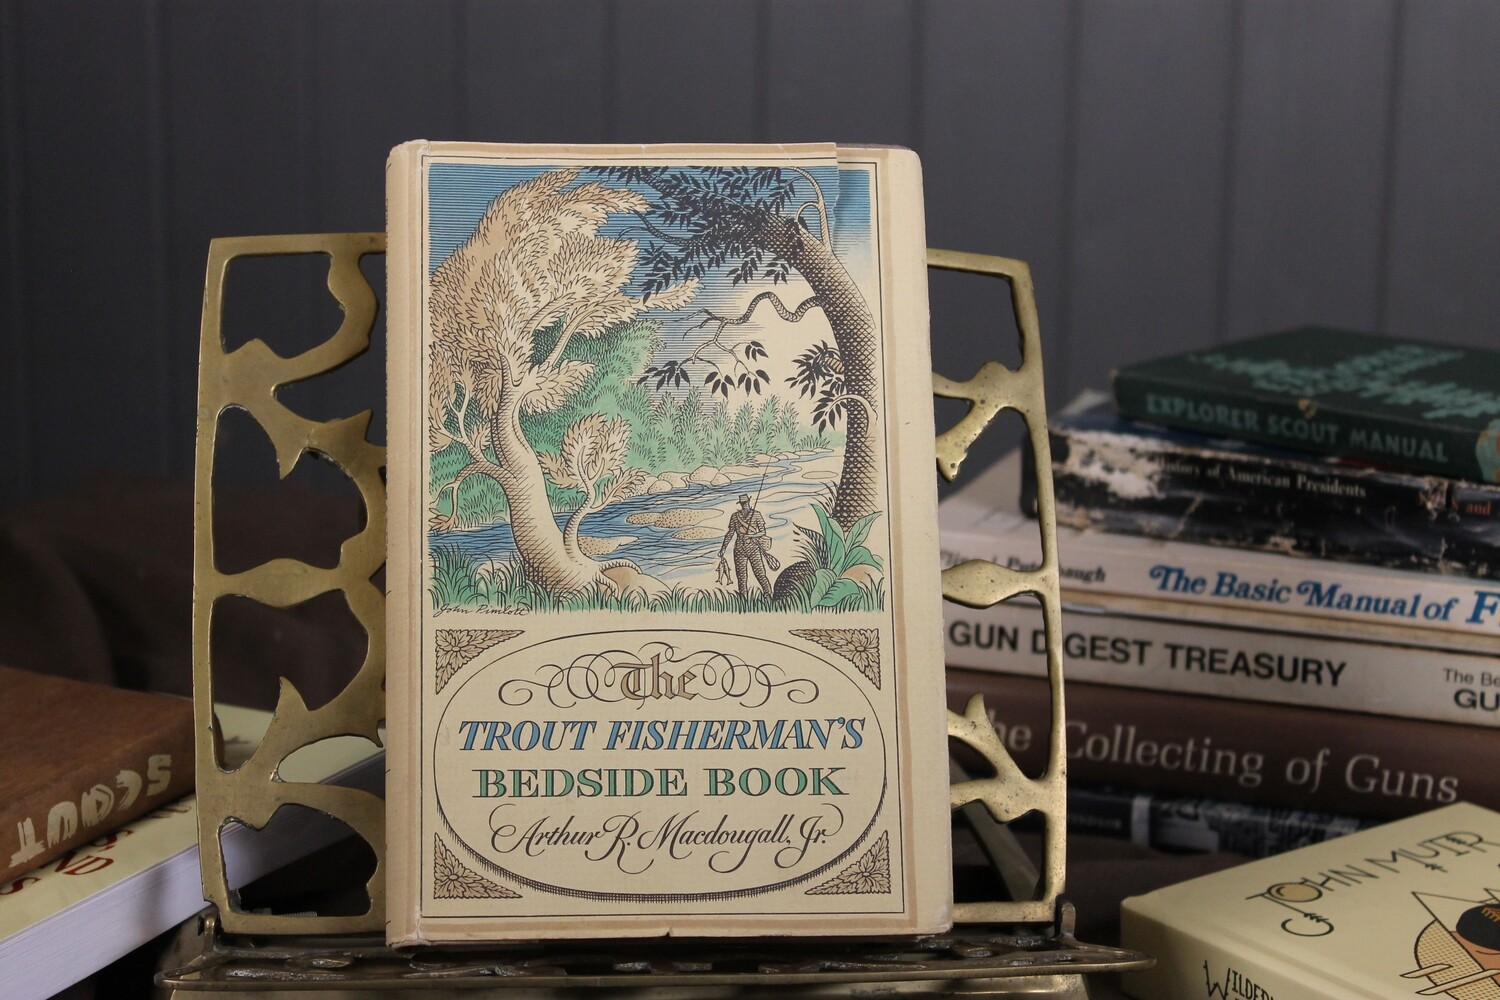 The Trout Fisherman's Bedside Book by Arthur R. Macdougall Jr.